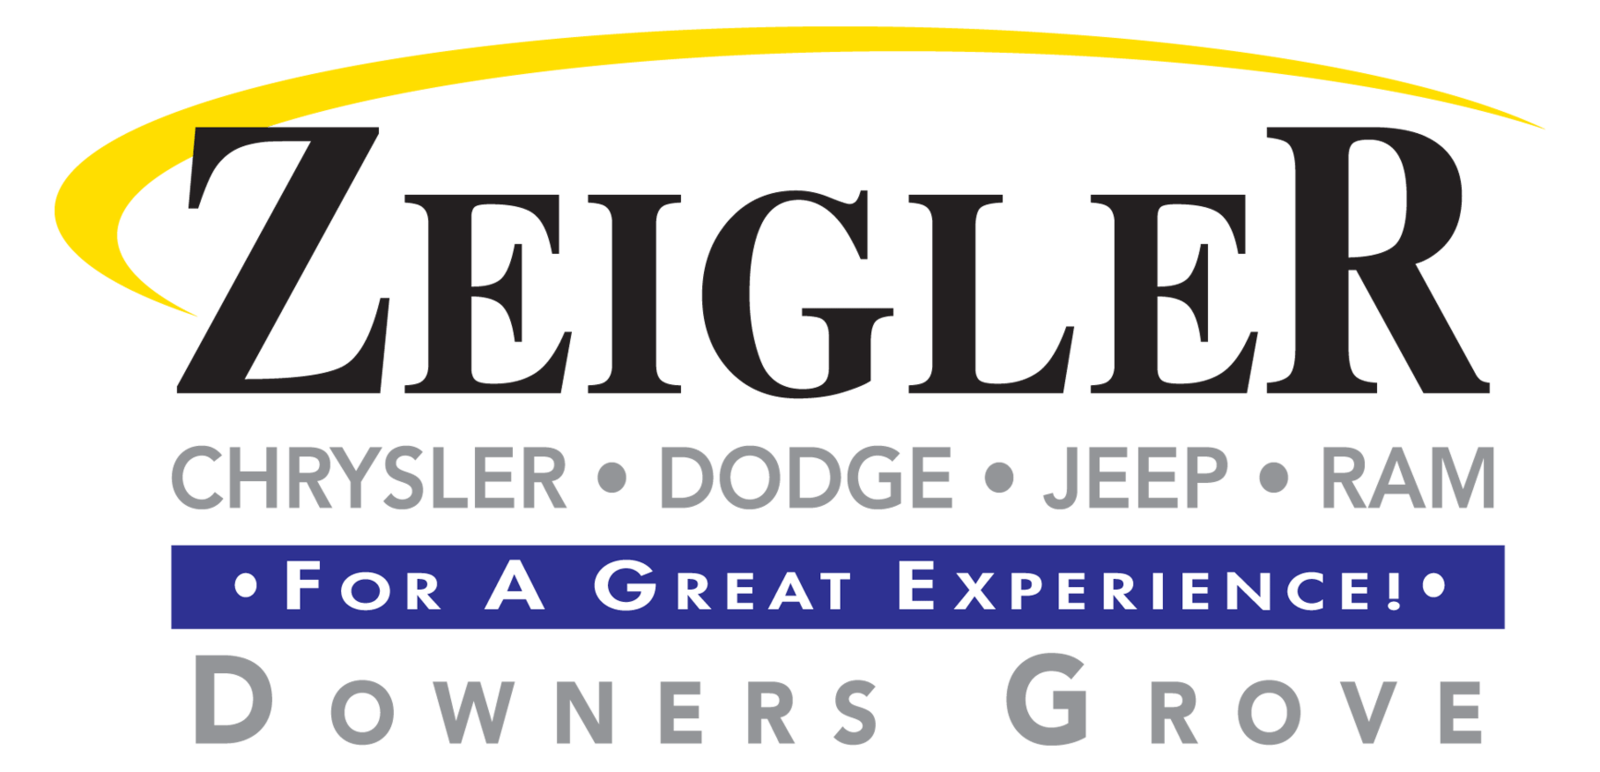 Zeigler Chrysler Dodge Jeep Ram of Downers Grove - Downers Grove, IL